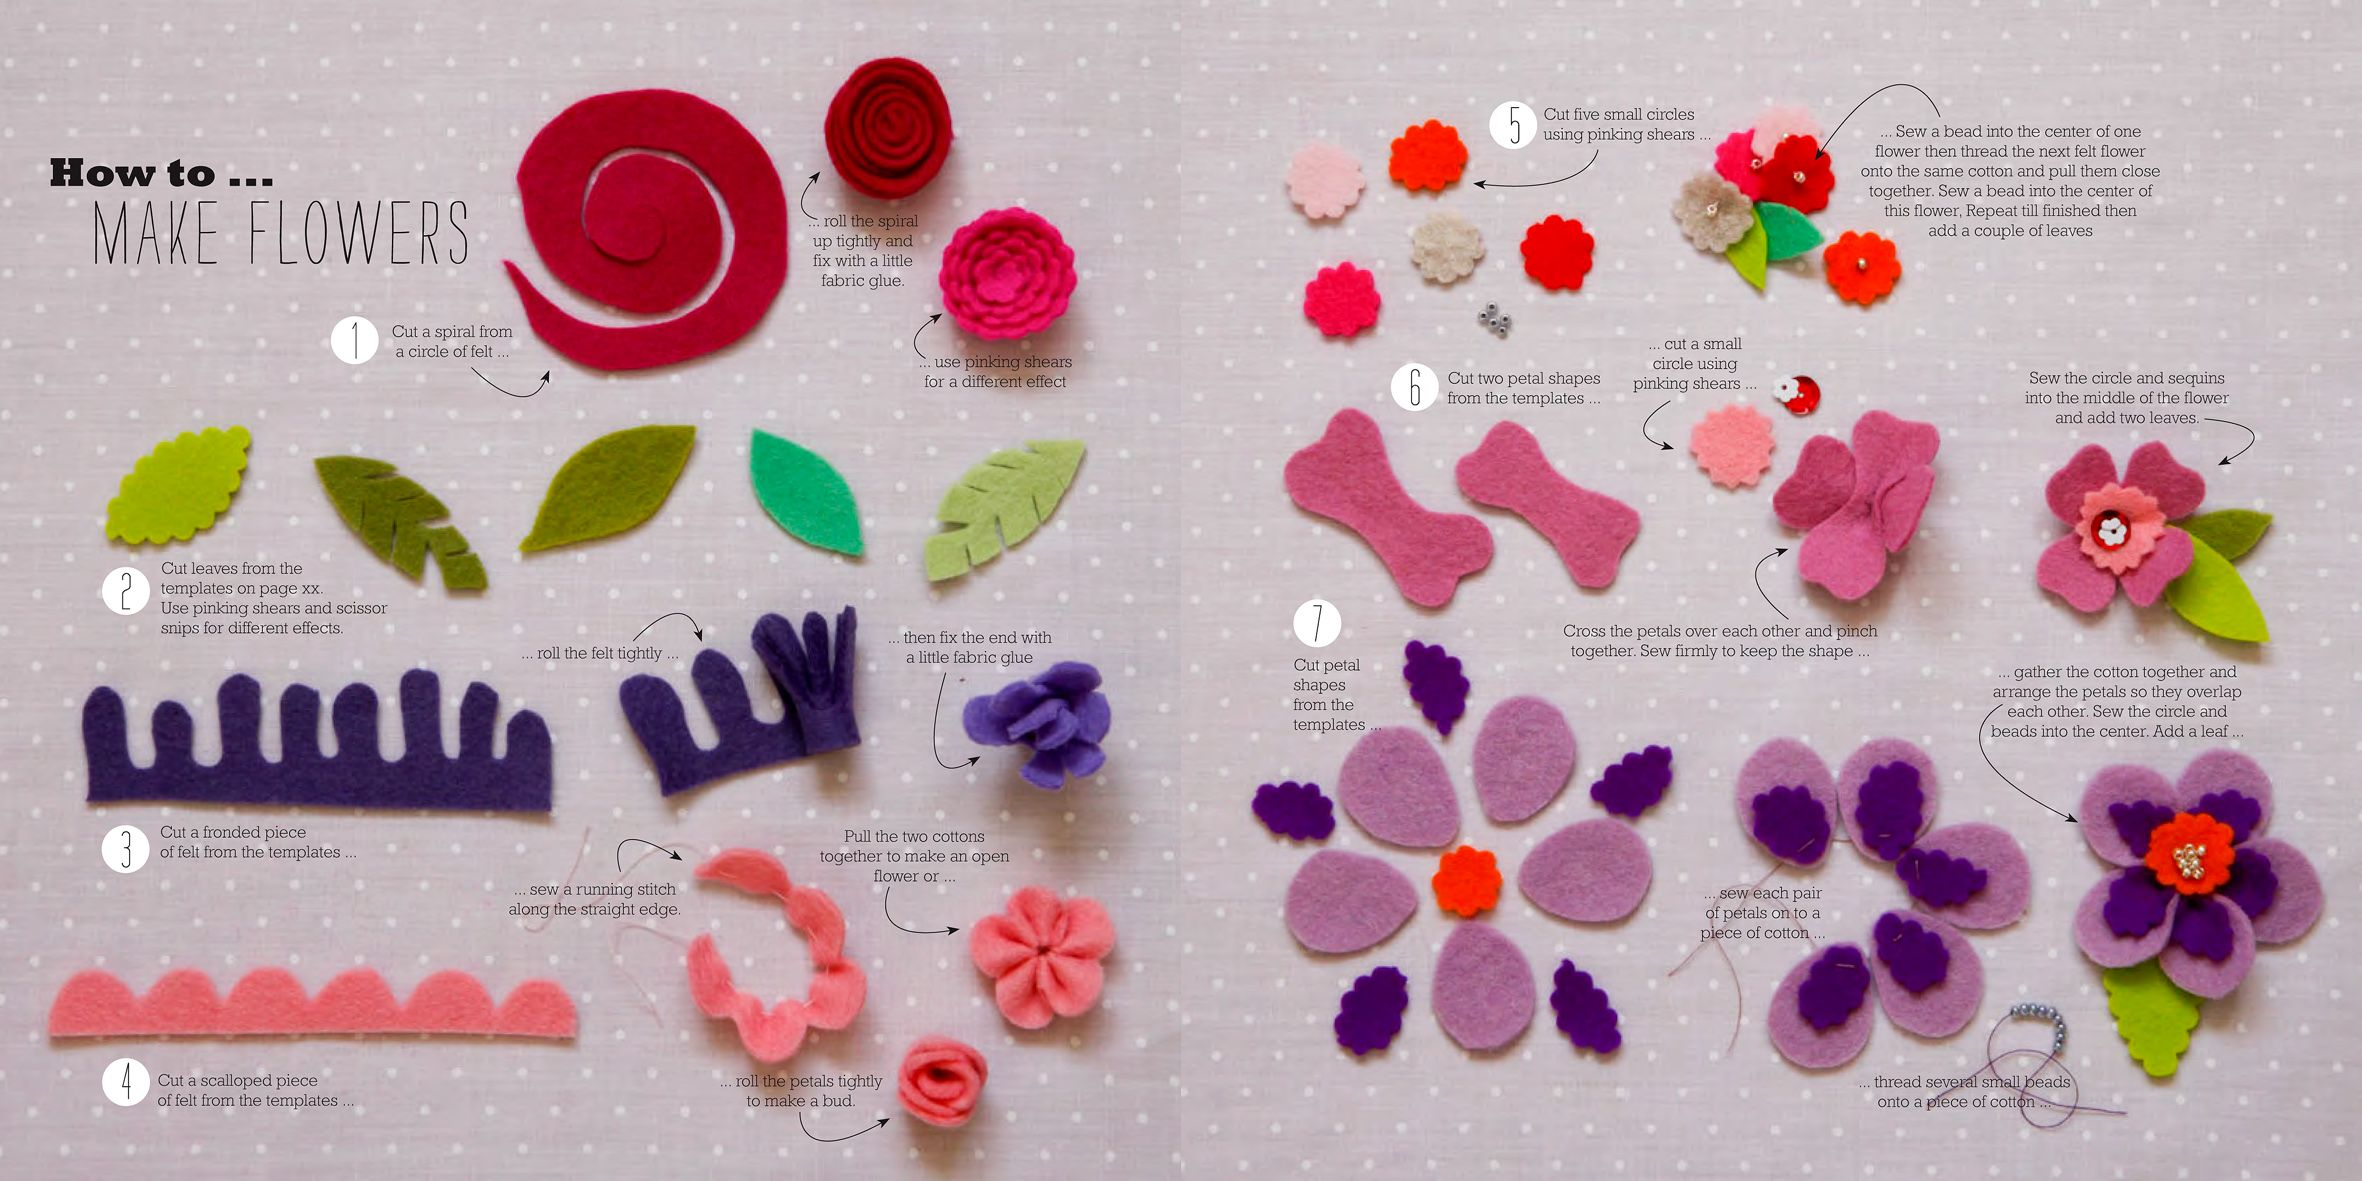 HOW TO MAKE FELT FLOWERS super cute able PDF guide to